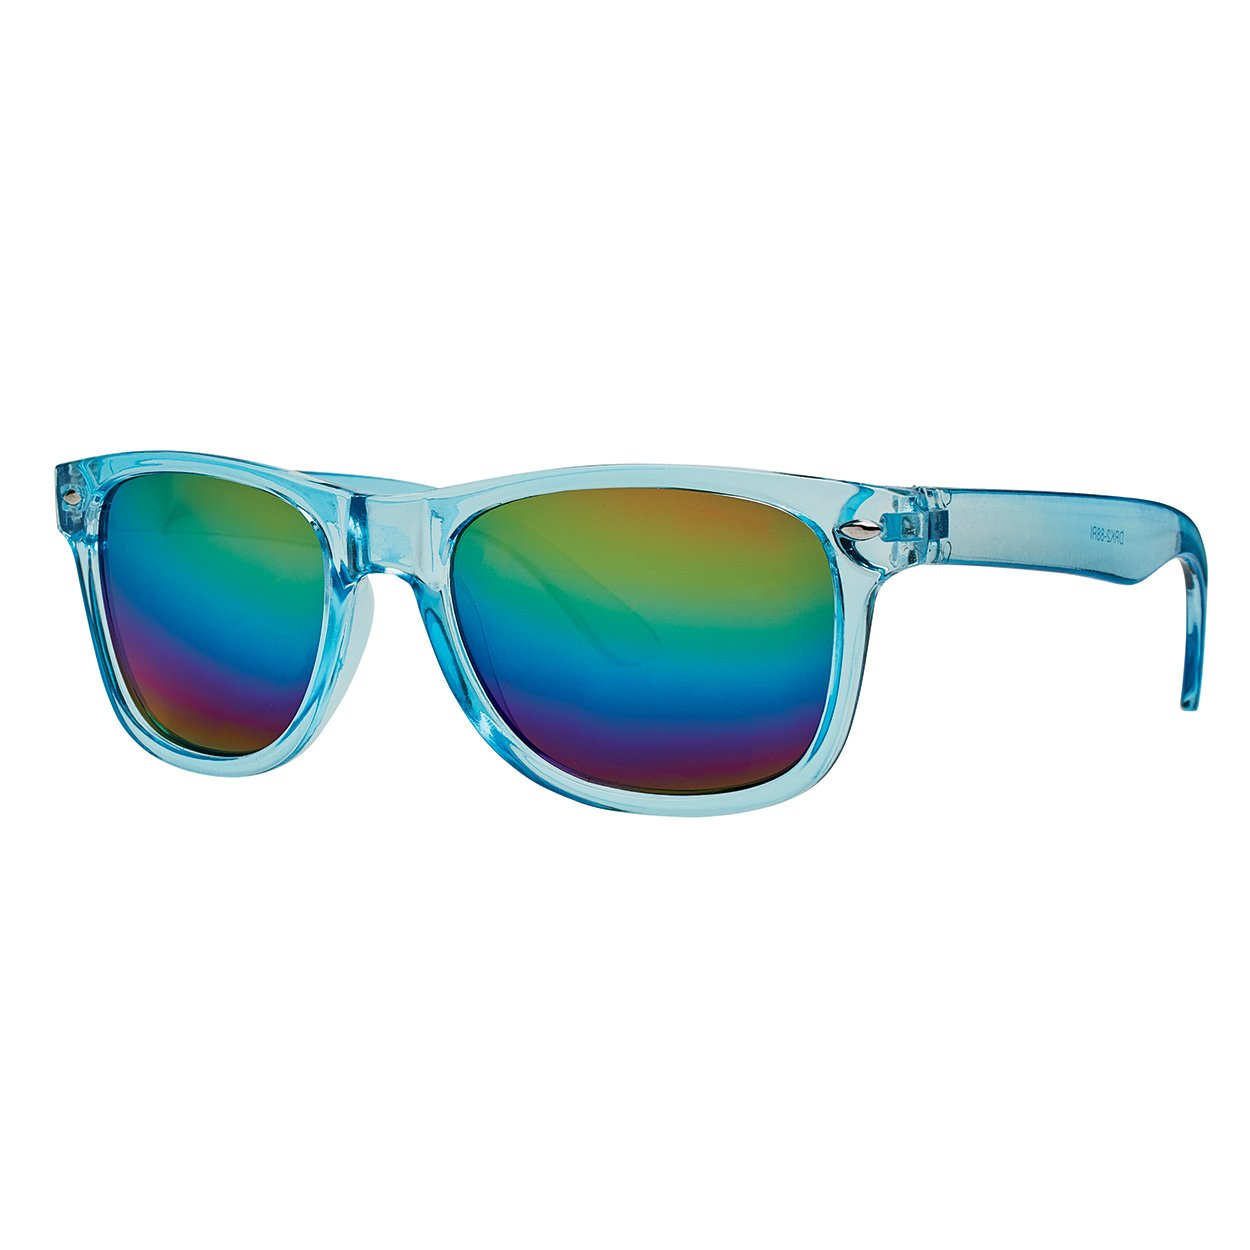 Kids Sunglasses Uv 400 Kids 3 8 Unisex Blue Wayferer Rainbow Mirrored Glasses Sunpoplife